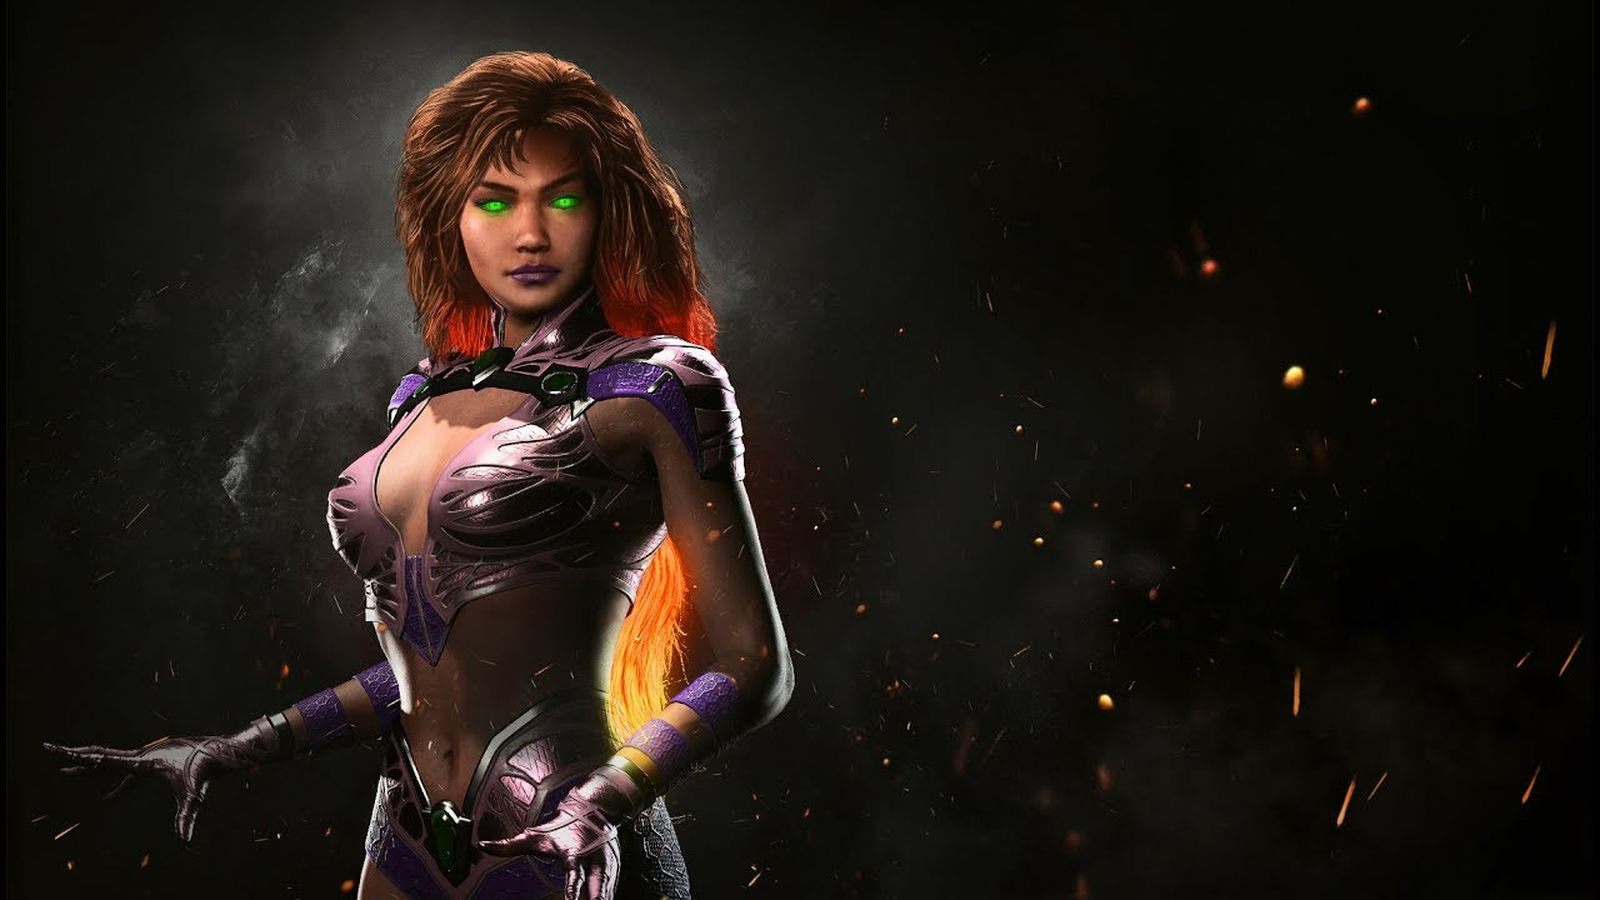 See Injustice 2's Starfire in action